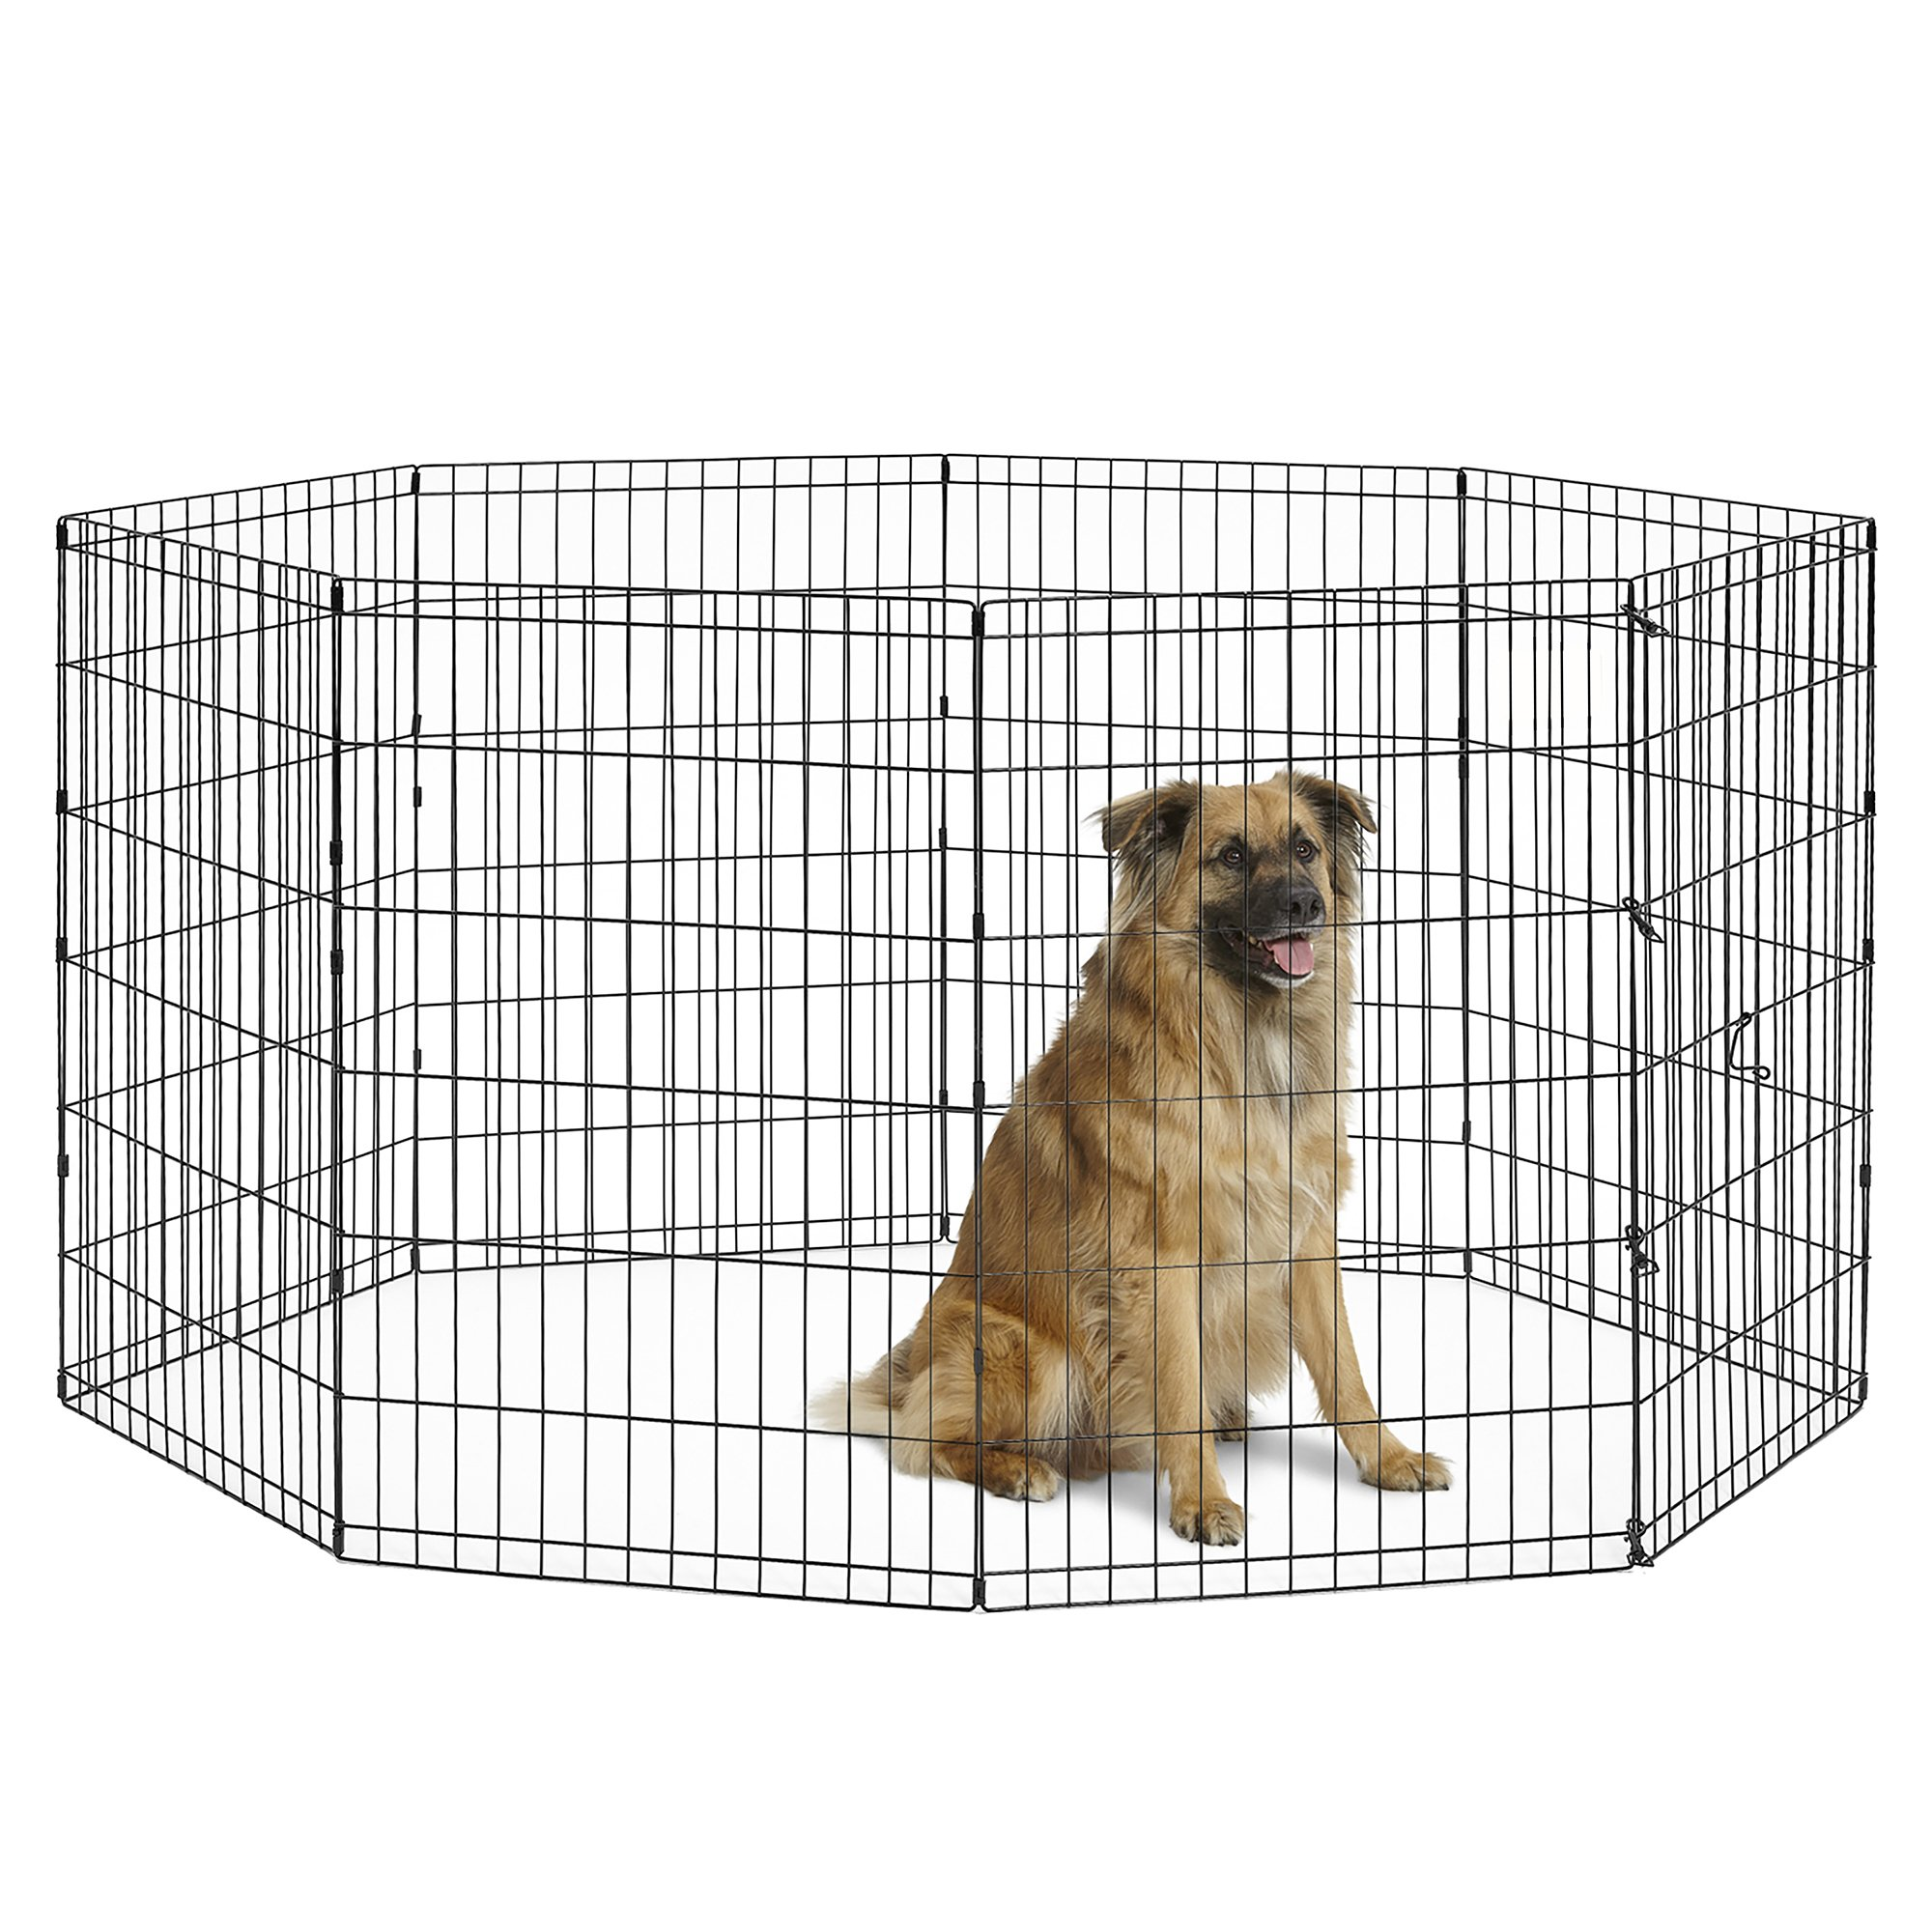 New World Pet Products B554-36 Foldable Exercise Pet Playpen, Black, Intermediate/24 x 36'' by New World Pet Products